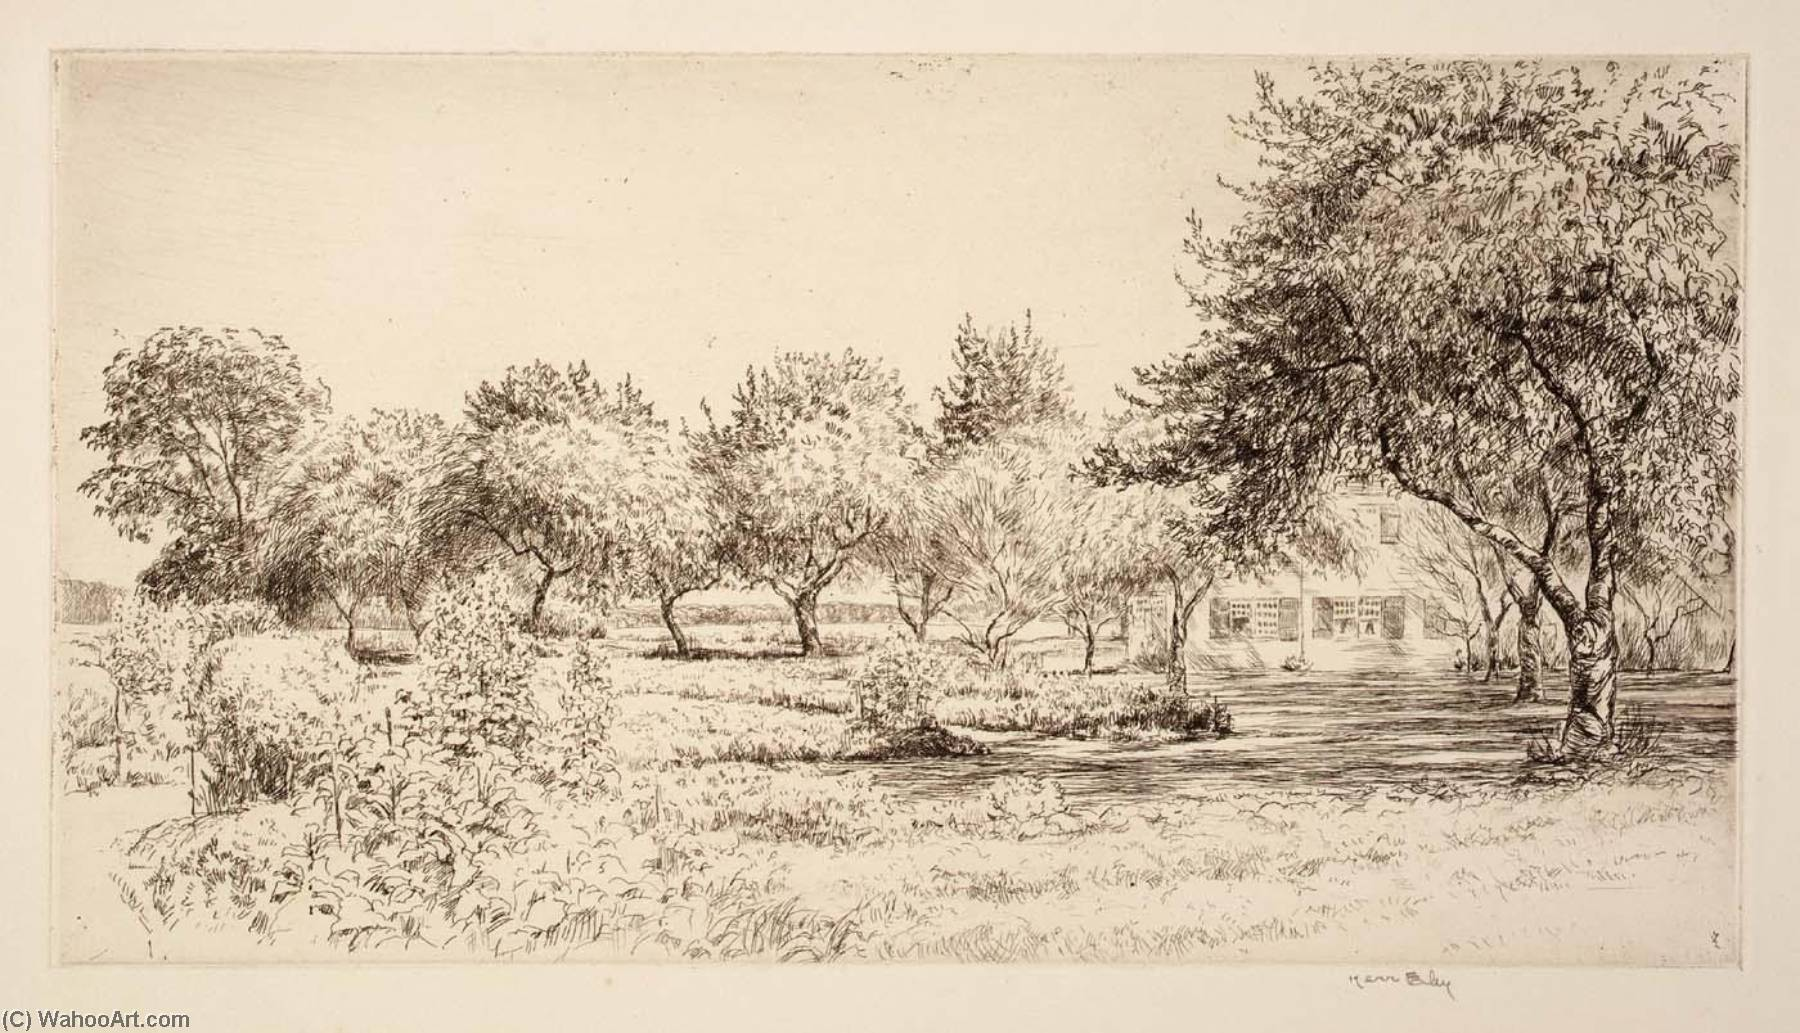 The Orchard, 1940 by Kerr Eby | WahooArt.com